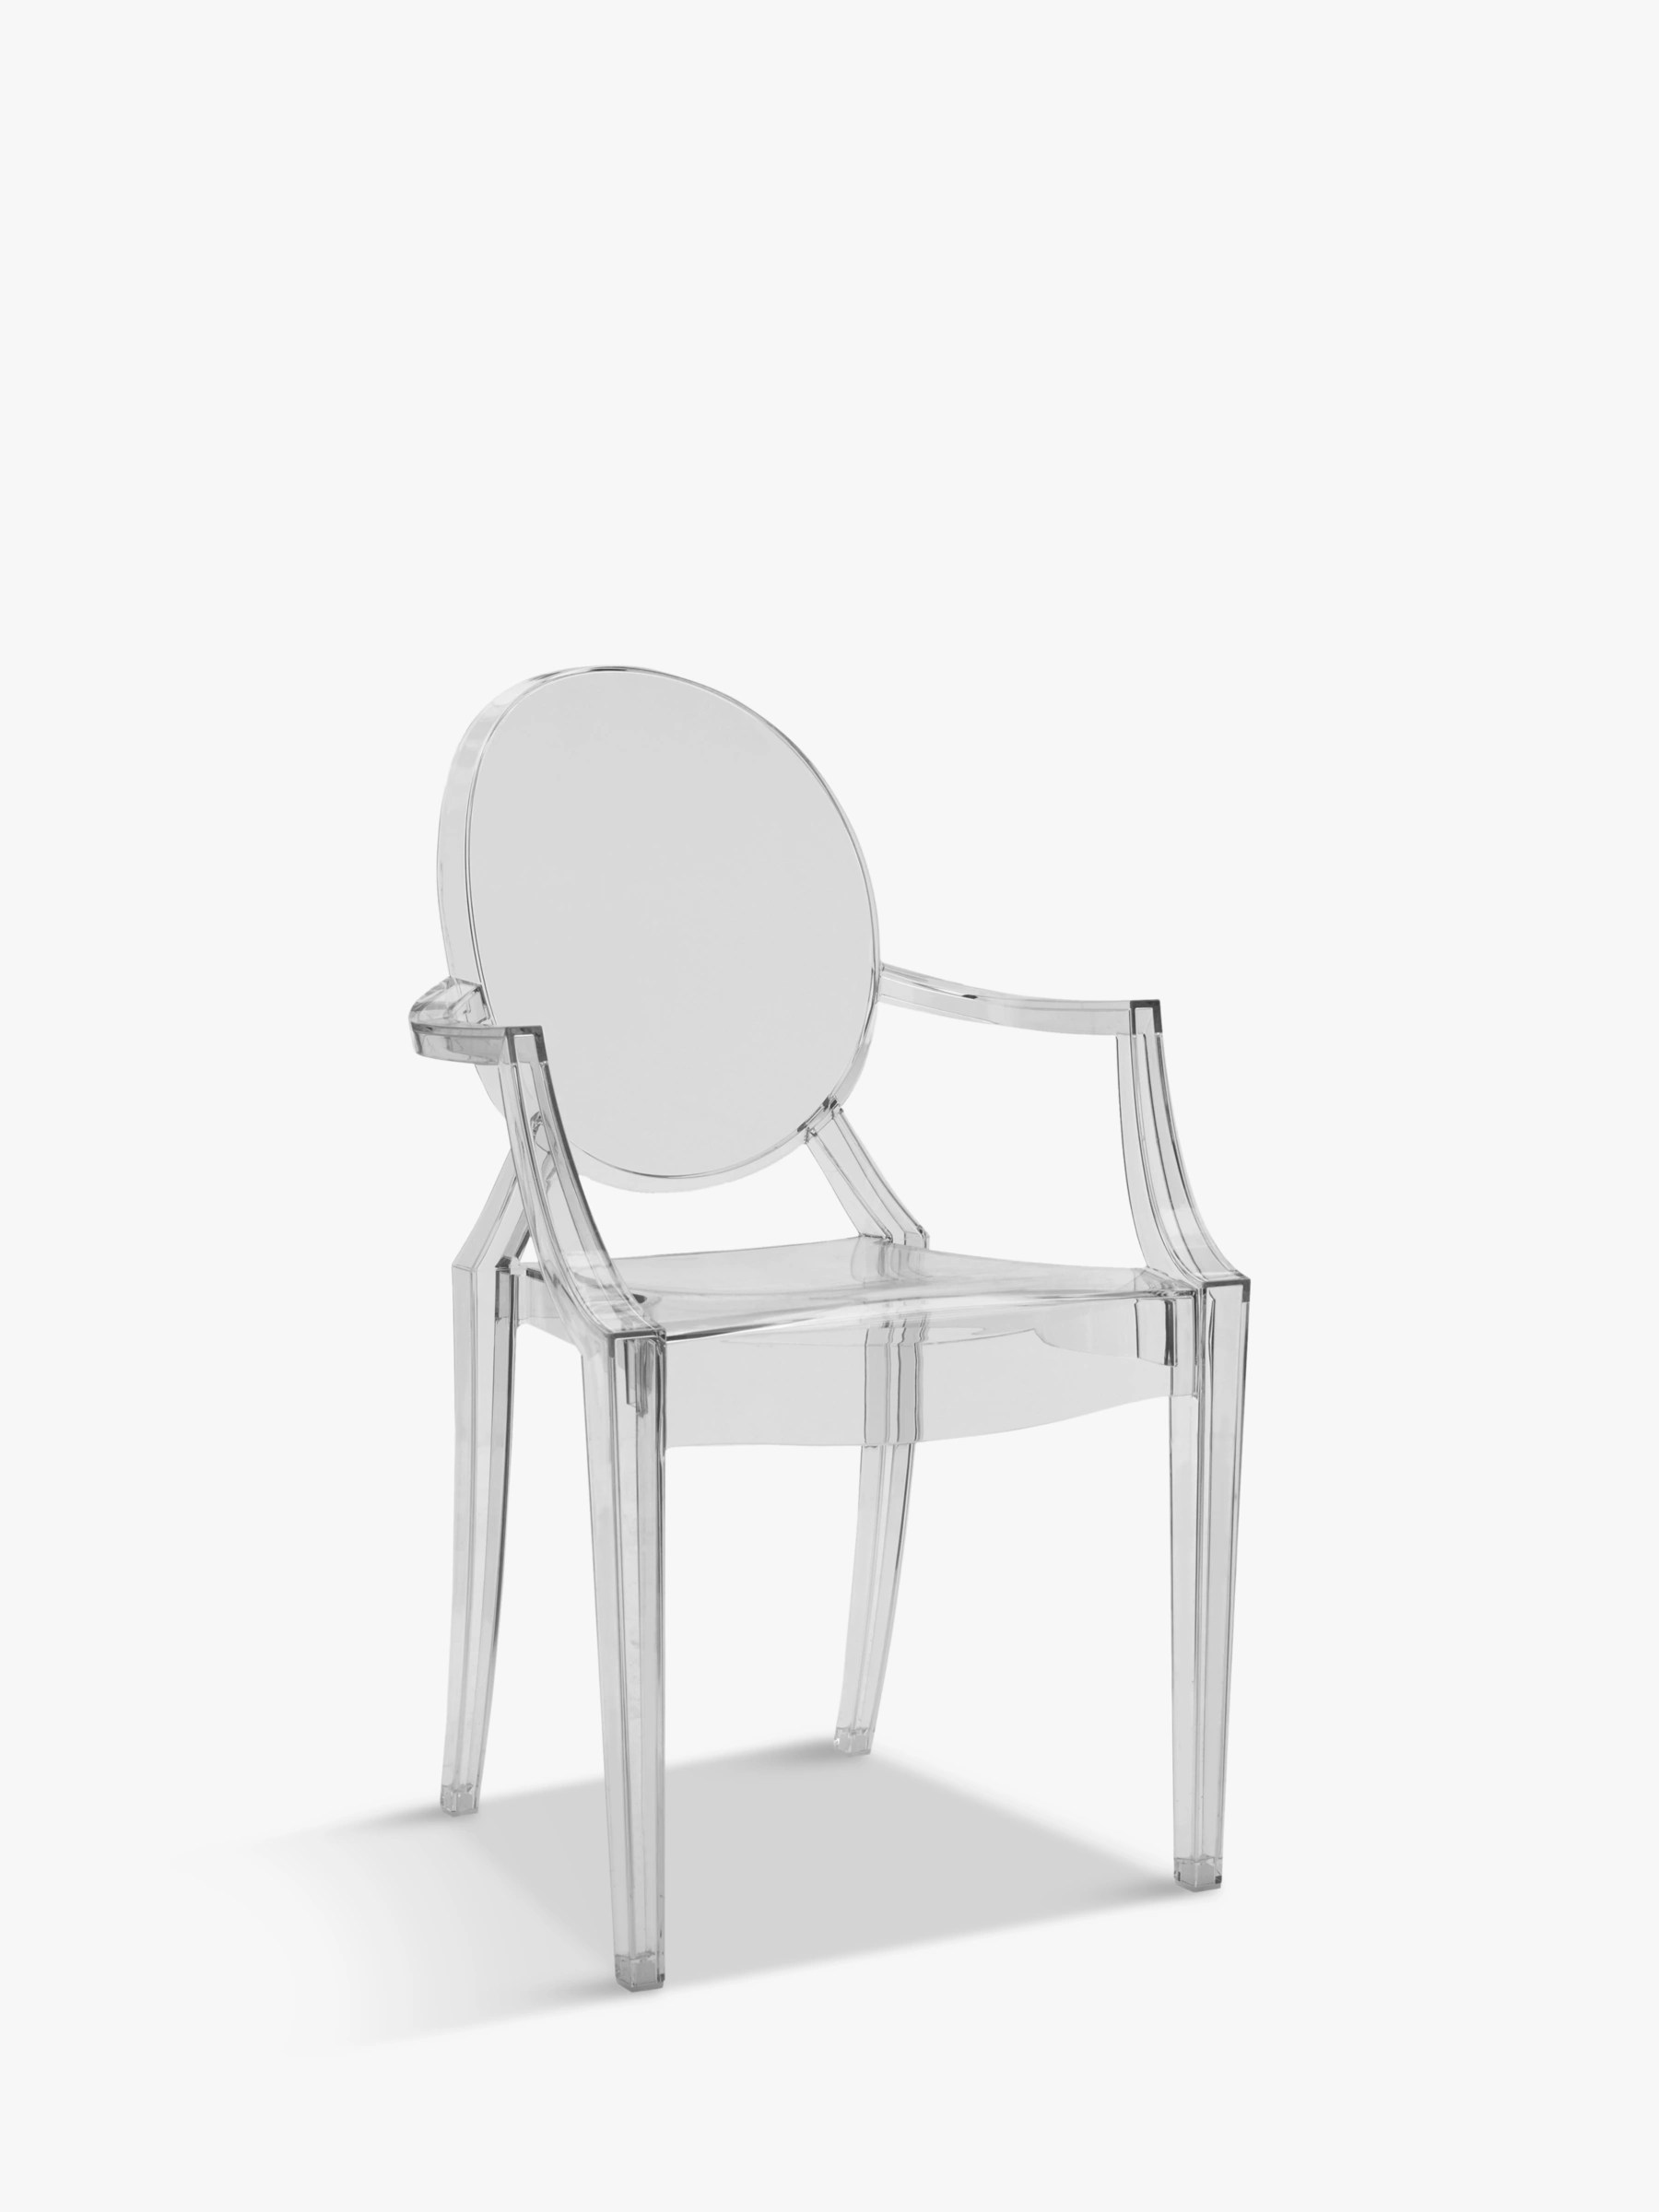 philippe starck ghost chair ergonomic chairs for back pain kartell louis at john lewis